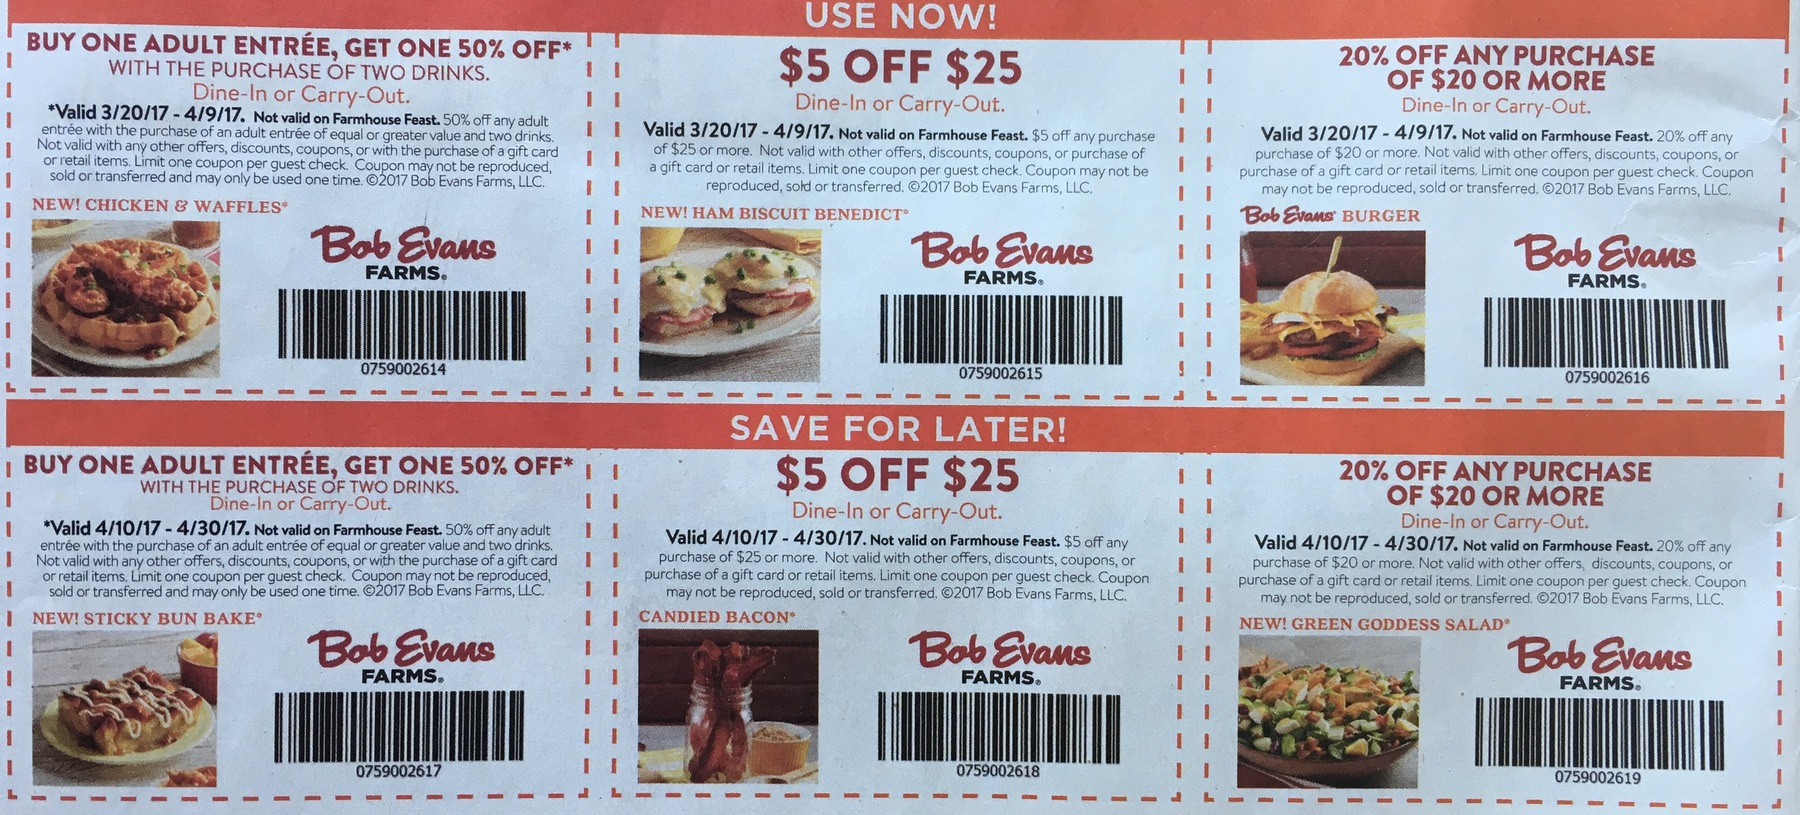 Napoleon coupon code 2018